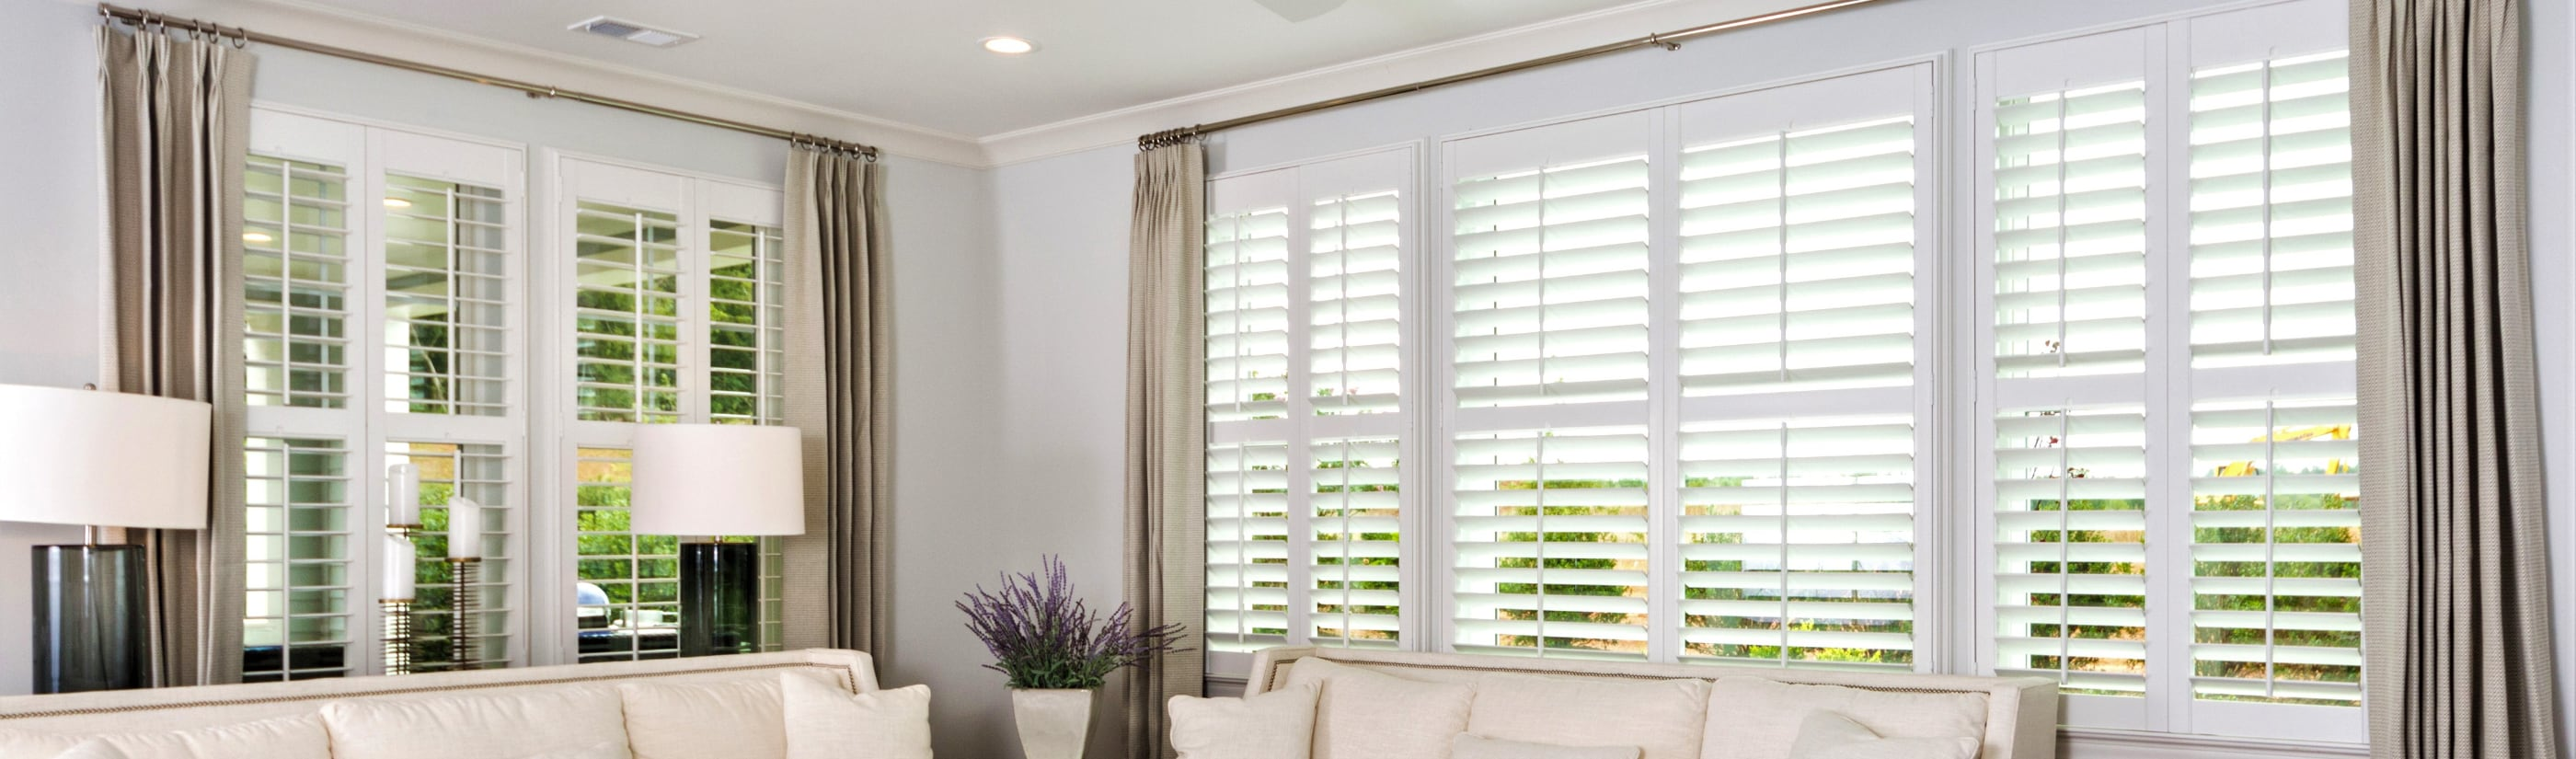 Polywood Shutters Paints In Southern California